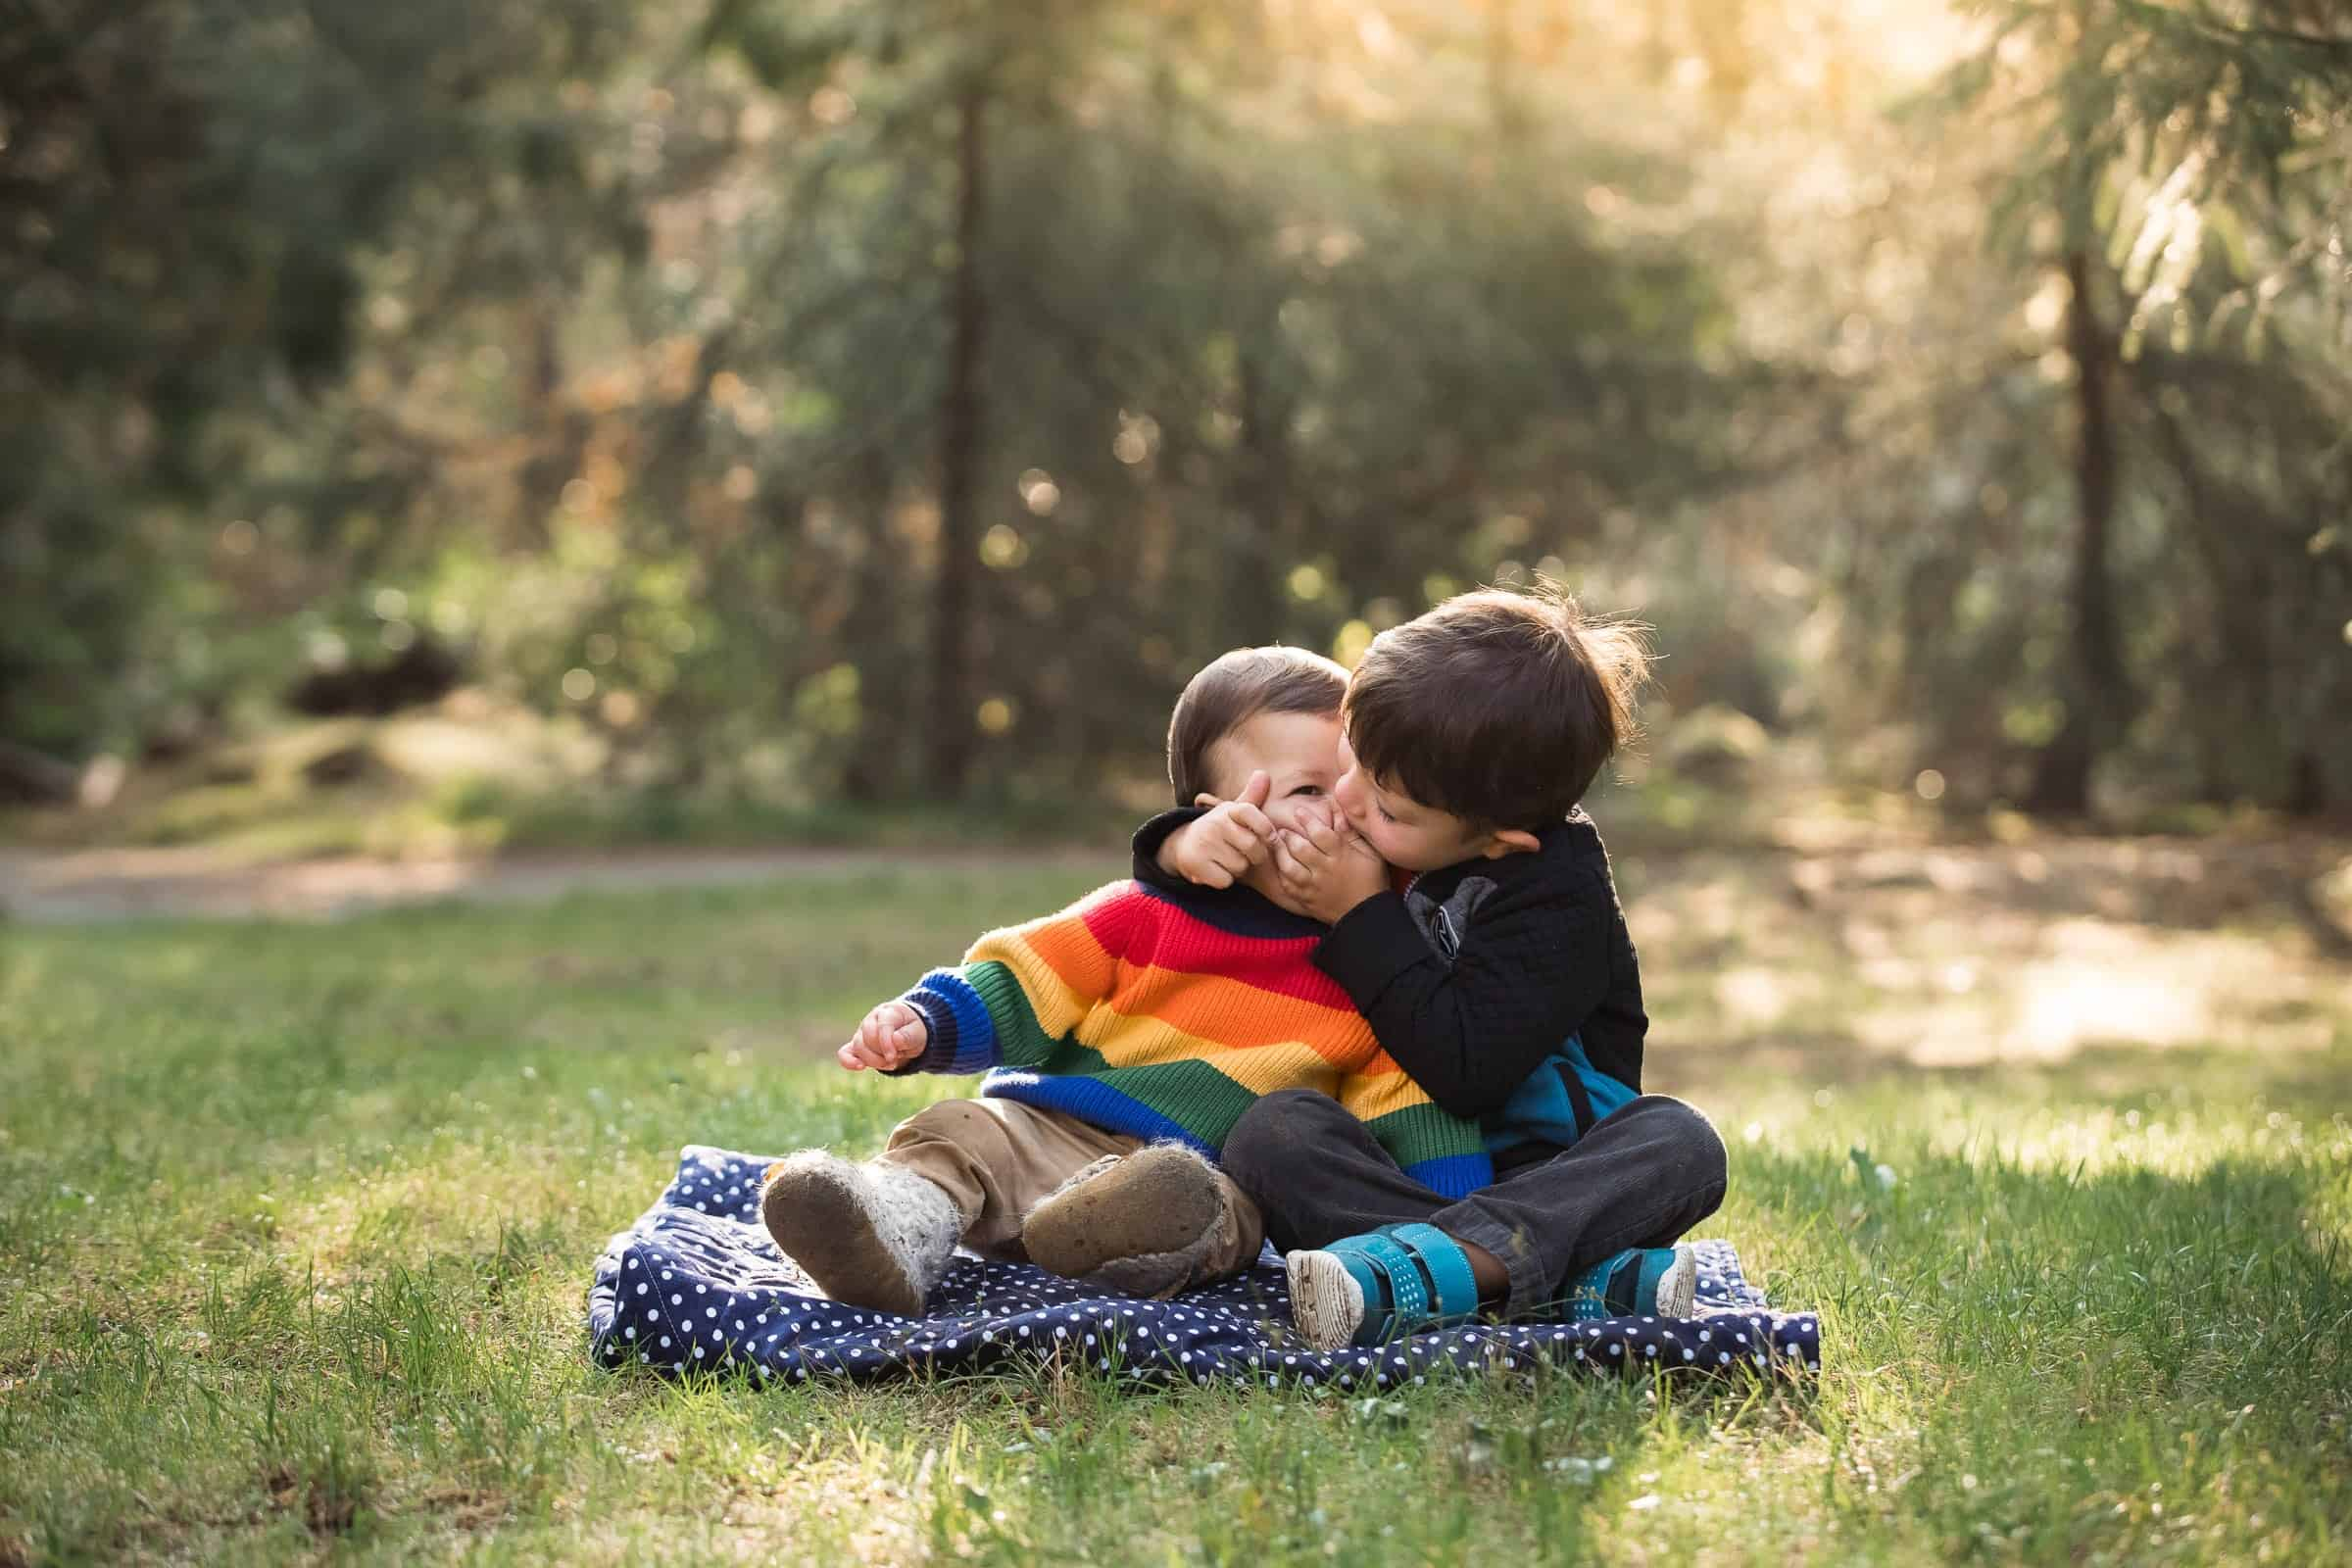 two little boys sitting on a blanket with big brother kissing baby brother in sunrise